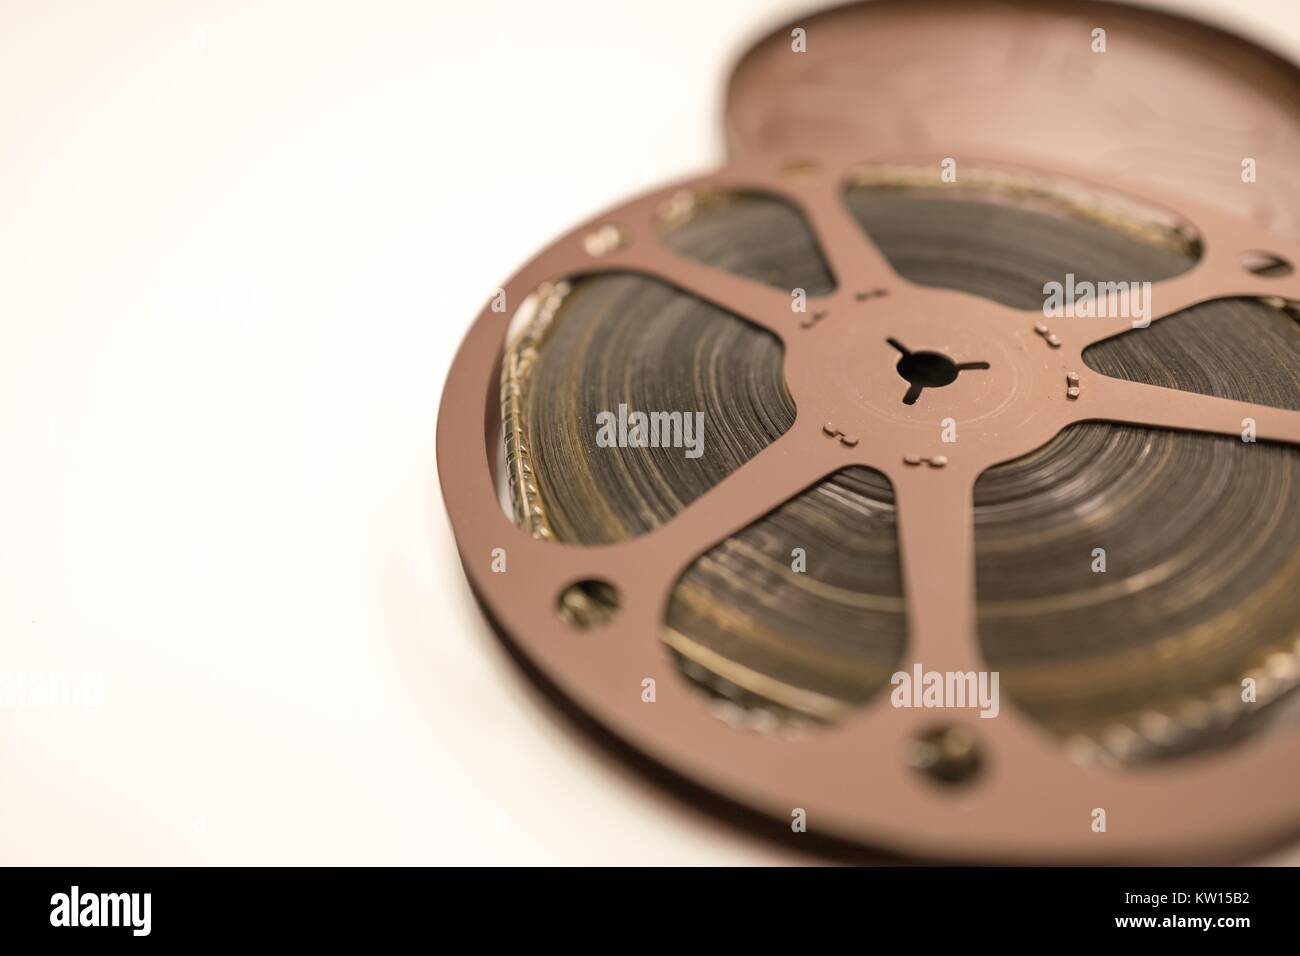 100 foot reel of 8mm home movie film, showing damaged caused by acetic acid degredation, isolated on a white background, - Stock Image